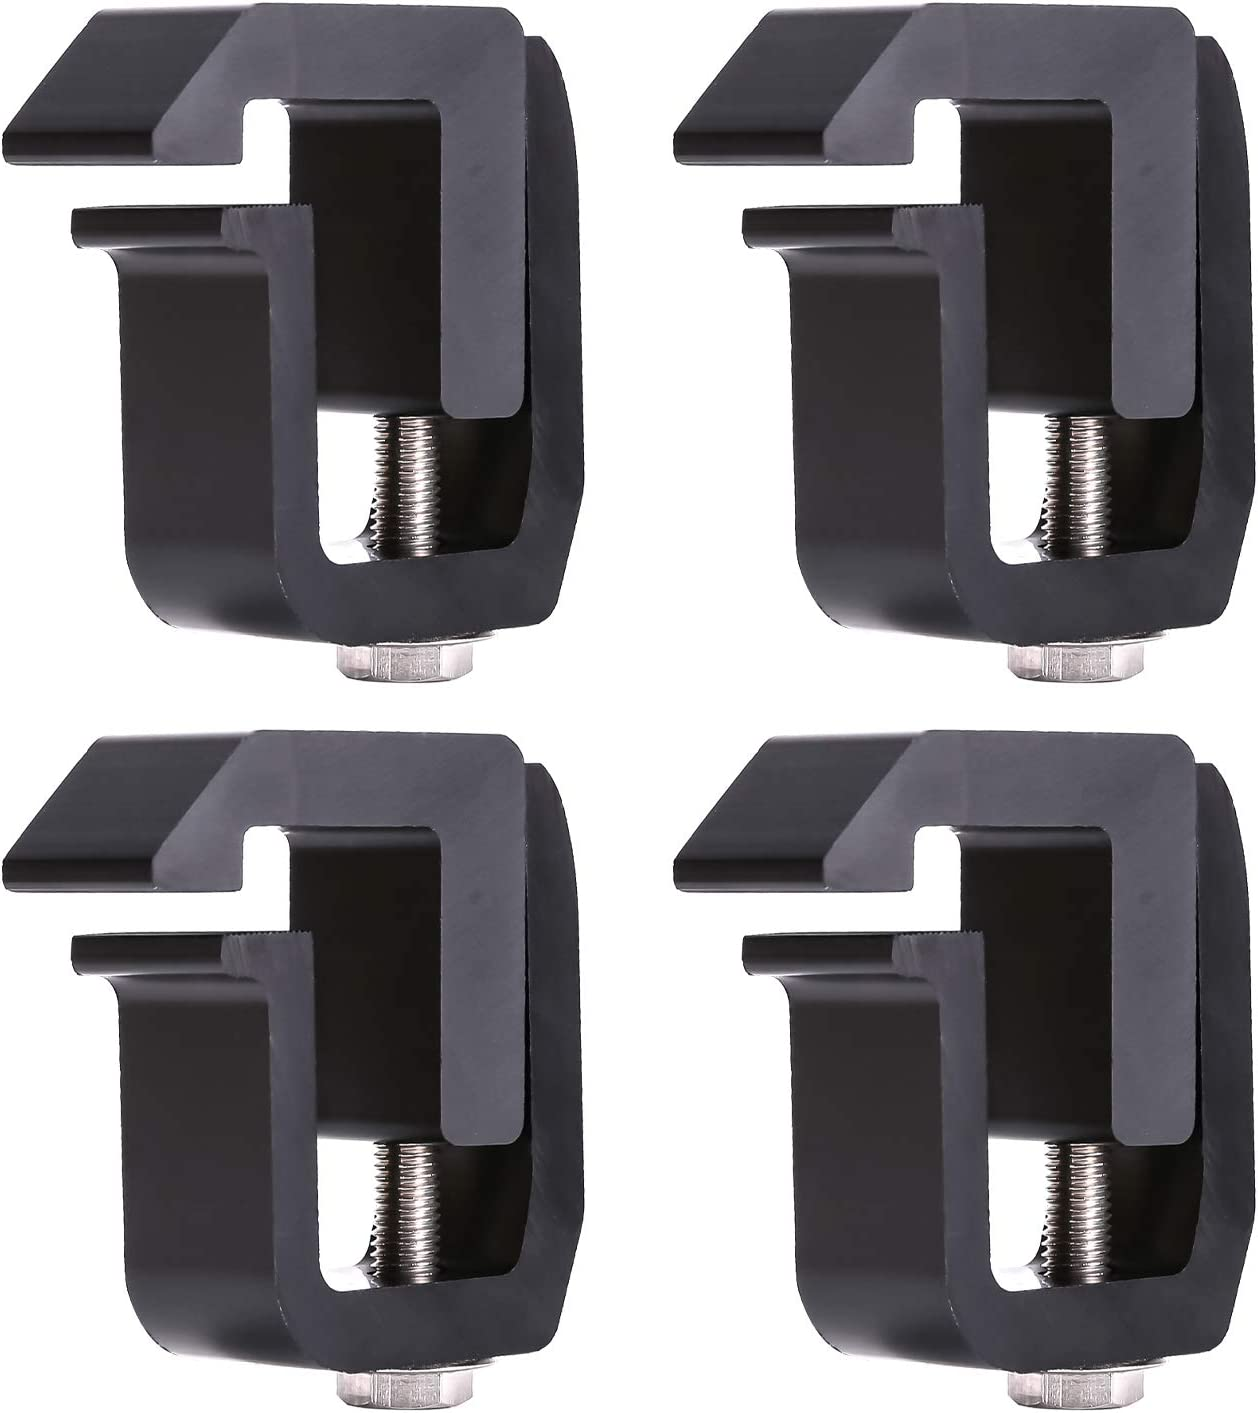 Black Ford F-150 F-250 F-350 AA-Racks P-AC-08 Truck Cap//Camper Shell Mounting Clamp fit Chverolet Silverado S-10 Colorado//GMC Sierra Sonoma Canyon Dodge Ram Set of 4